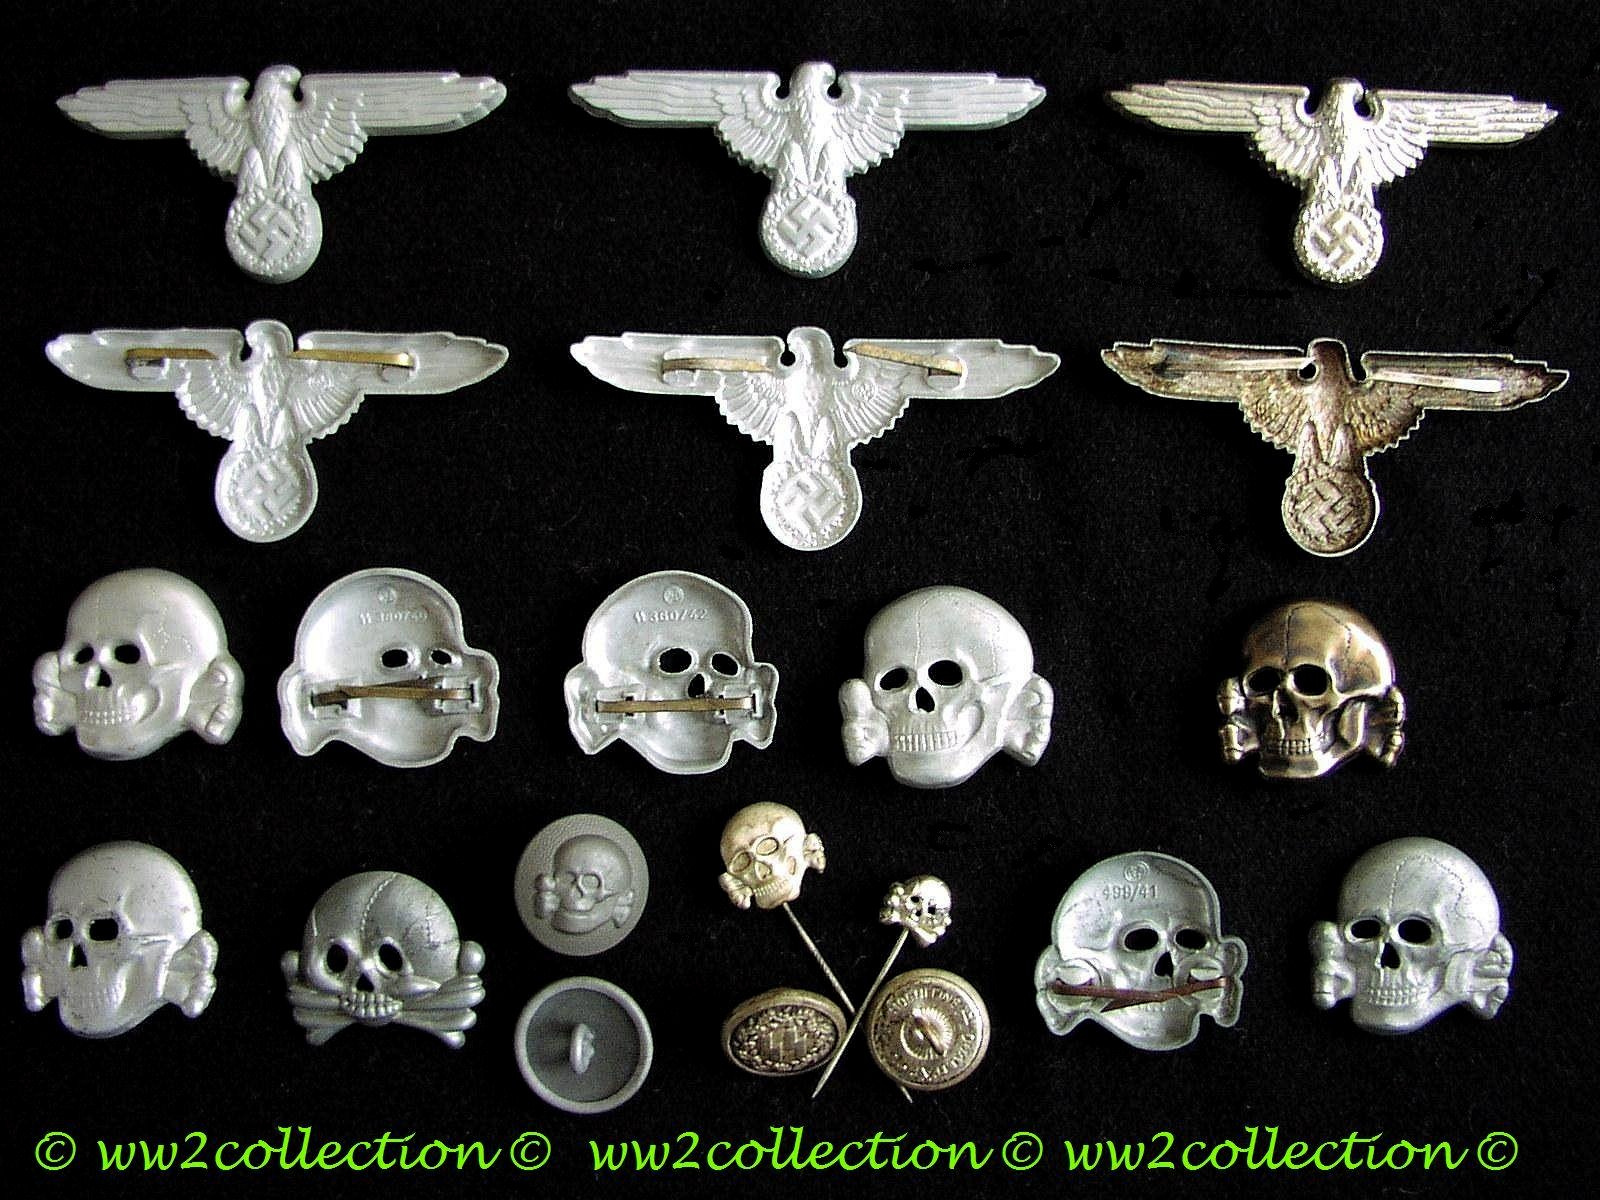 Metal SS Capeagle and SS Skull RZM 499/41, Authentic WW2